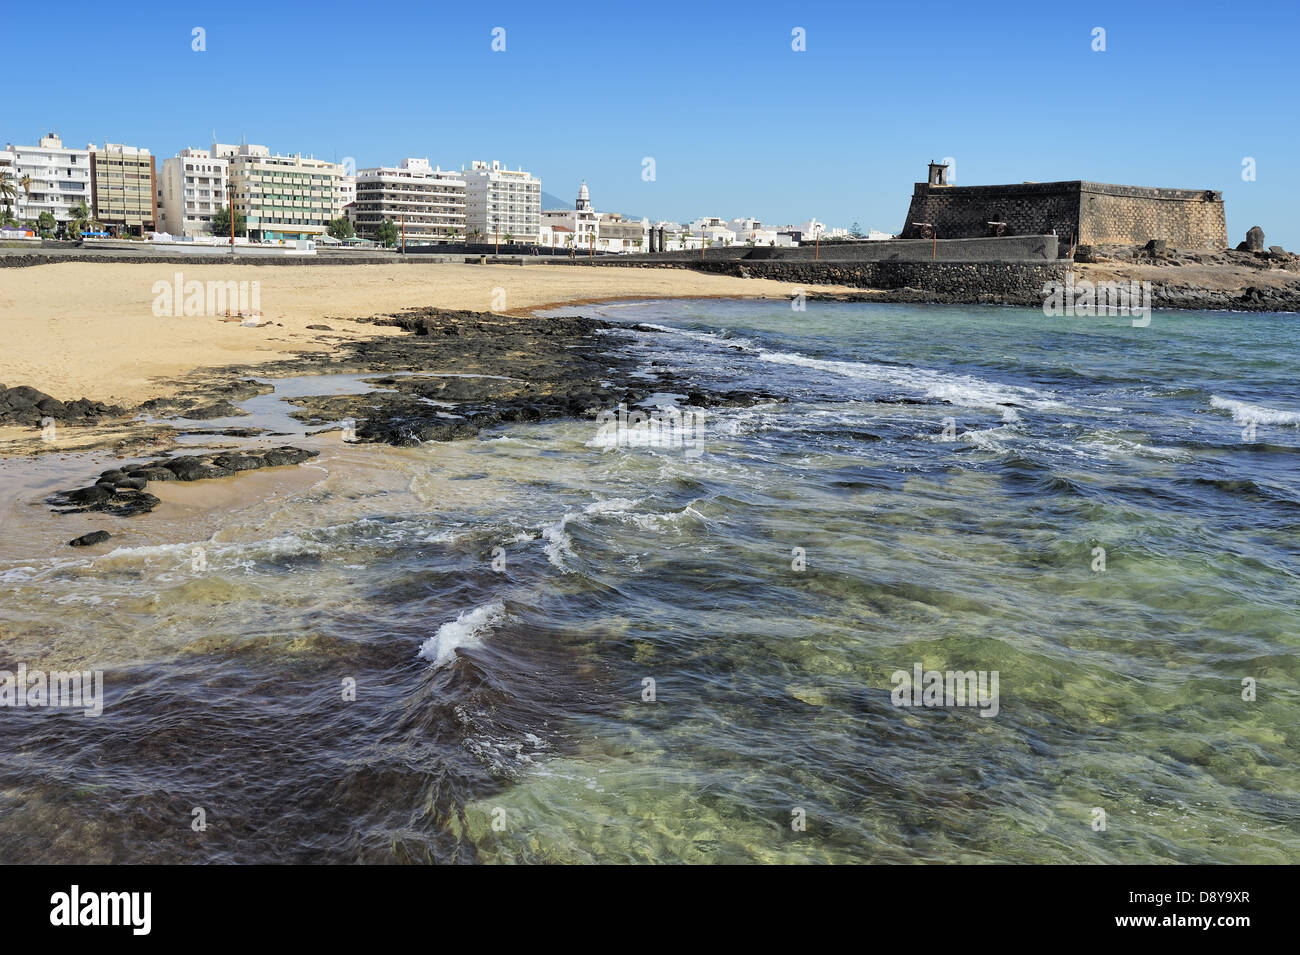 seaview at Arrecife and Castle of San Gabriel, Lanzarote, Canary Islands, Spain - Stock Image